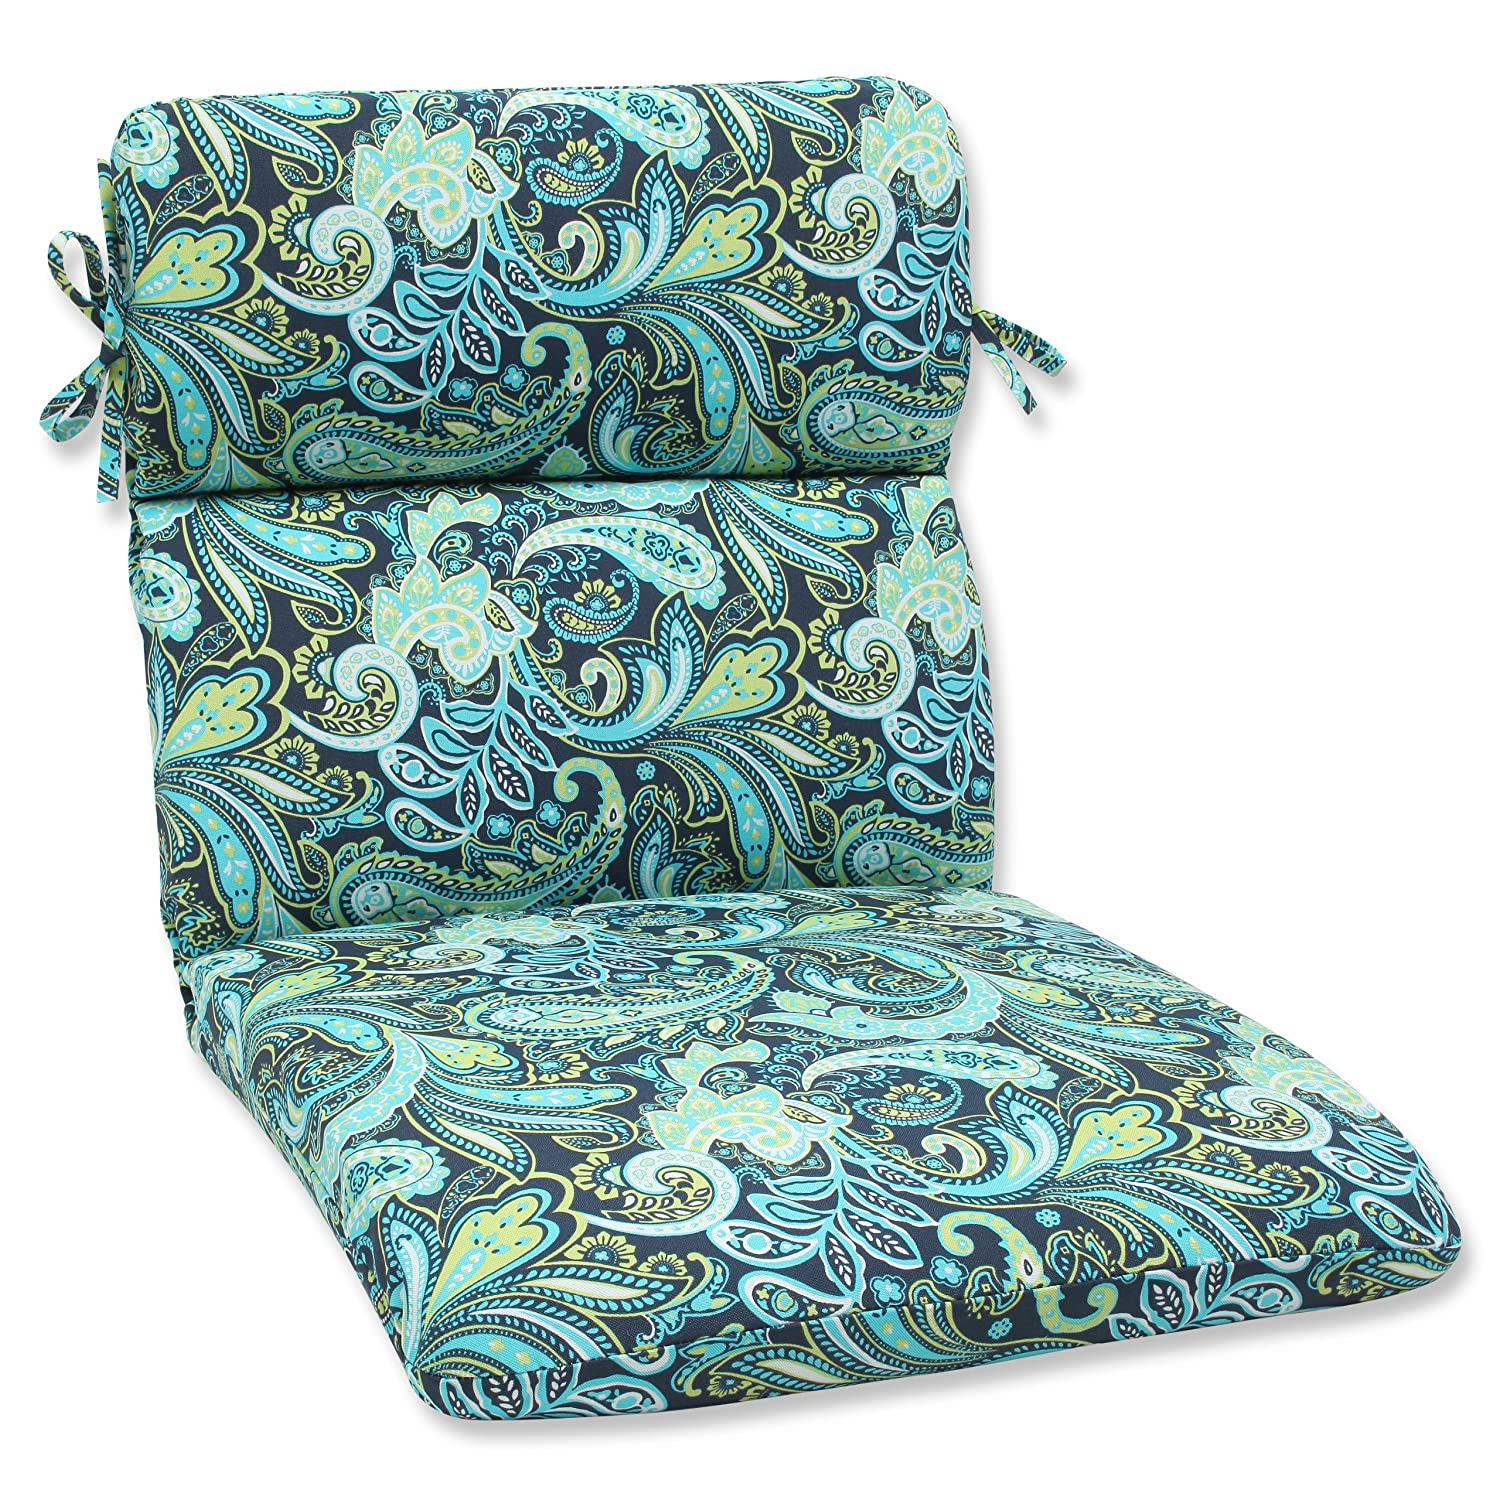 amazoncom pillow perfect outdoor pretty paisley rounded corners chair cushion navy home u0026 kitchen